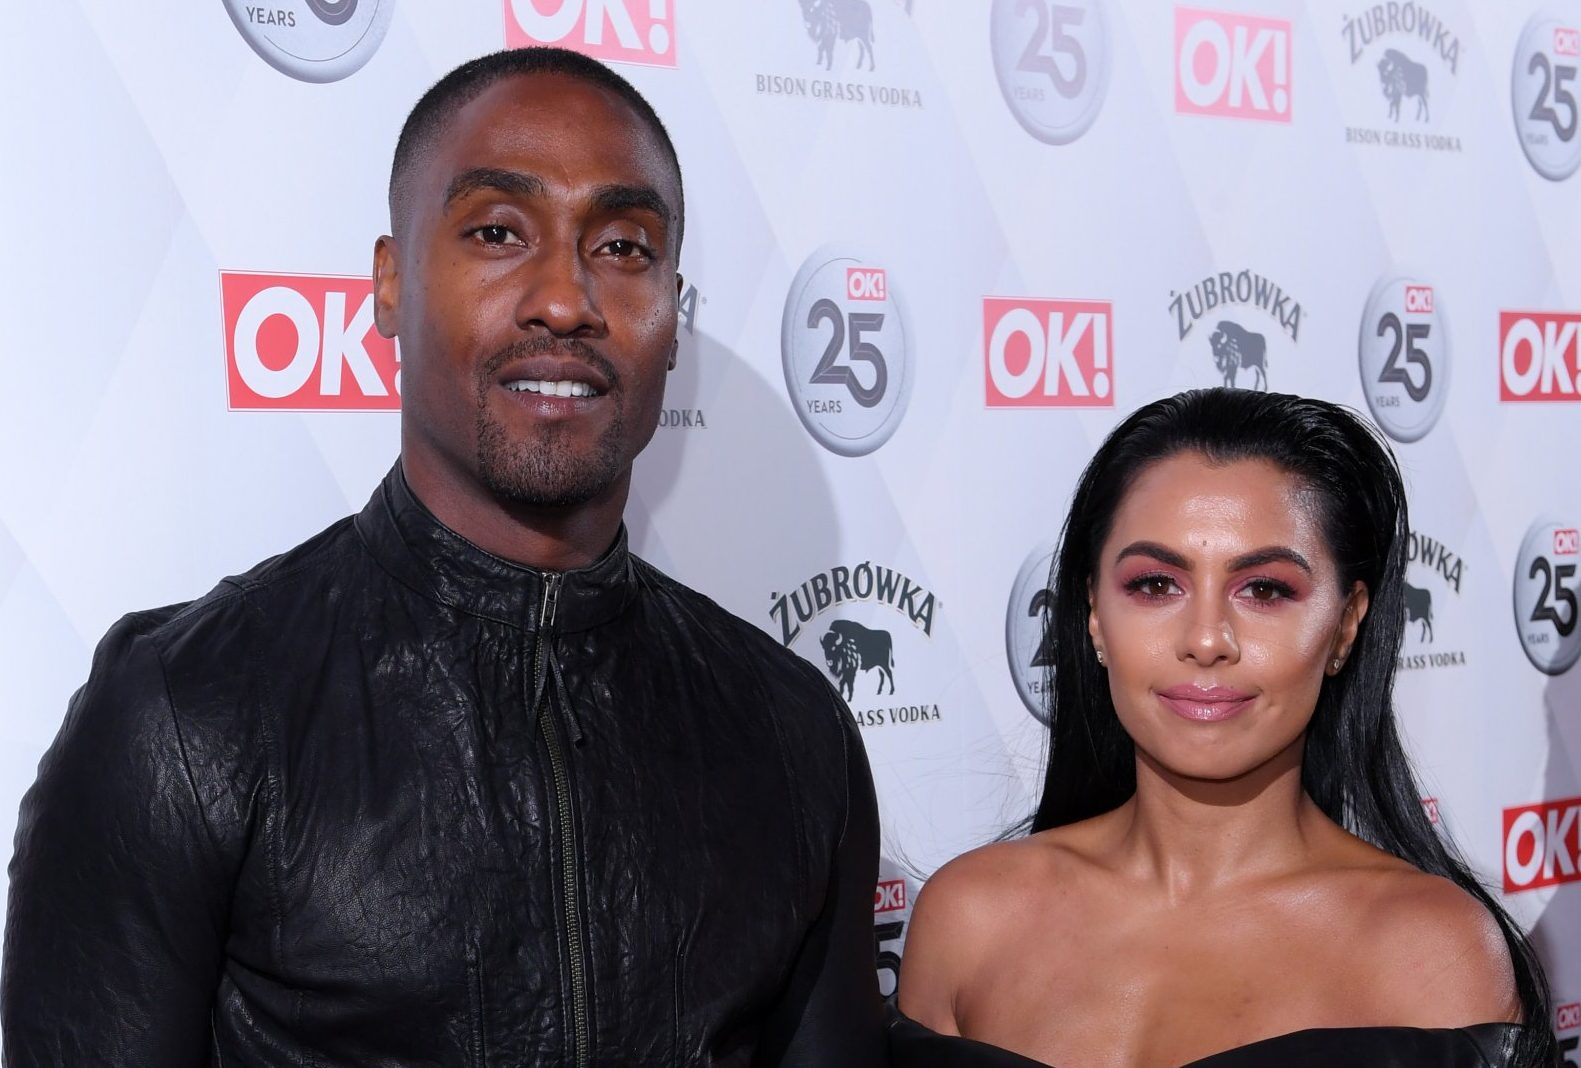 Mandatory Credit: Photo by David Fisher/REX/Shutterstock (9472660et) Simon Webbe and Ayshen Kemal OK! Magazine's 25th anniversary party, The Shard, London, UK - 21 Mar 2018